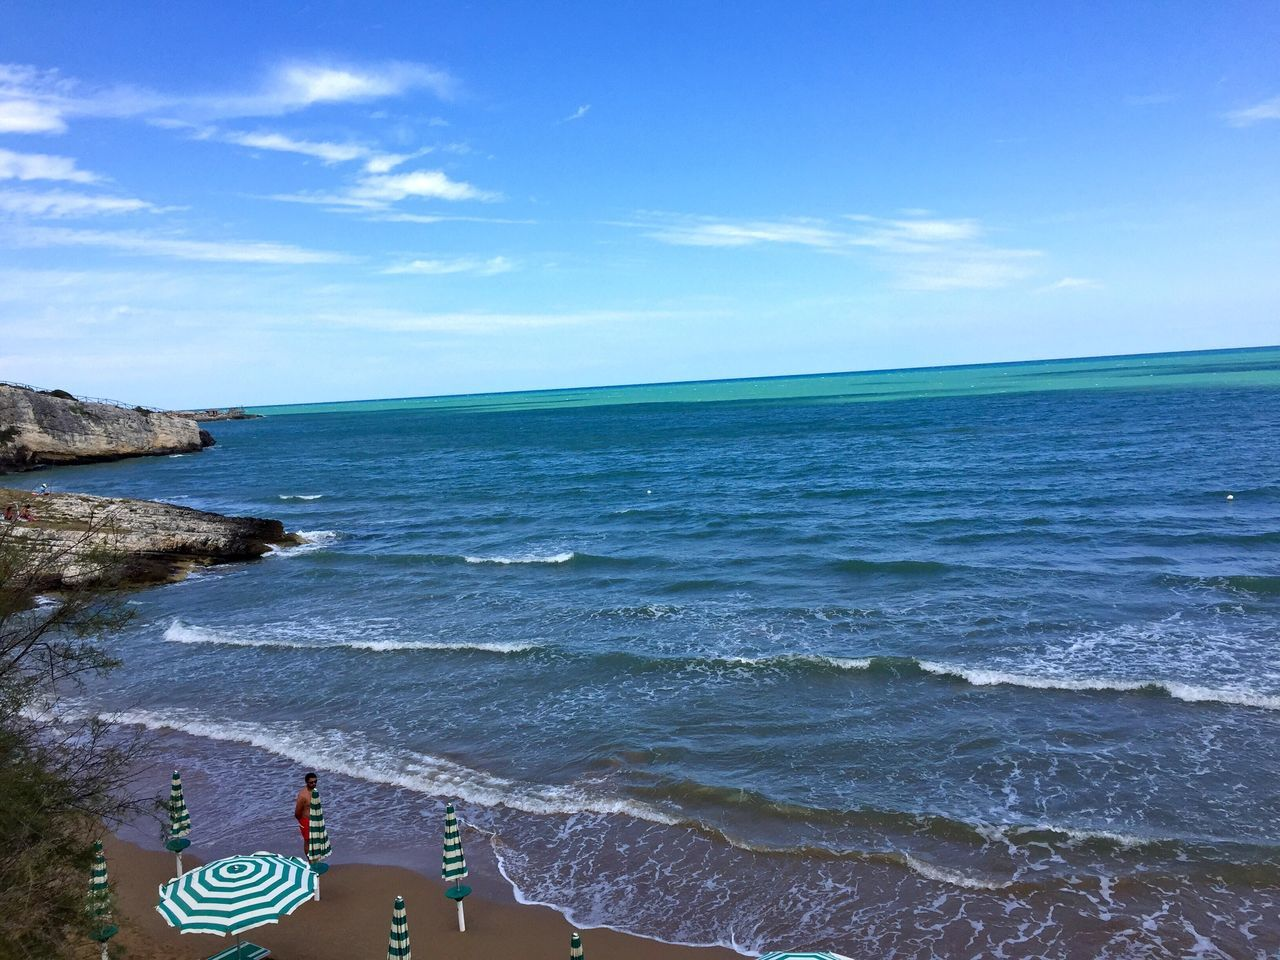 My Year My View Sea Sky Water Horizon Over Water Scenics Beauty In Nature Nature Tranquility Outdoors Day No People Cloud - Sky Beach Sea And Sky Blue Color Rock Formation Seaside Seascape Waterfront Wave Spash Splashing Waves Wave And Sky Splashing Water Water And Sky